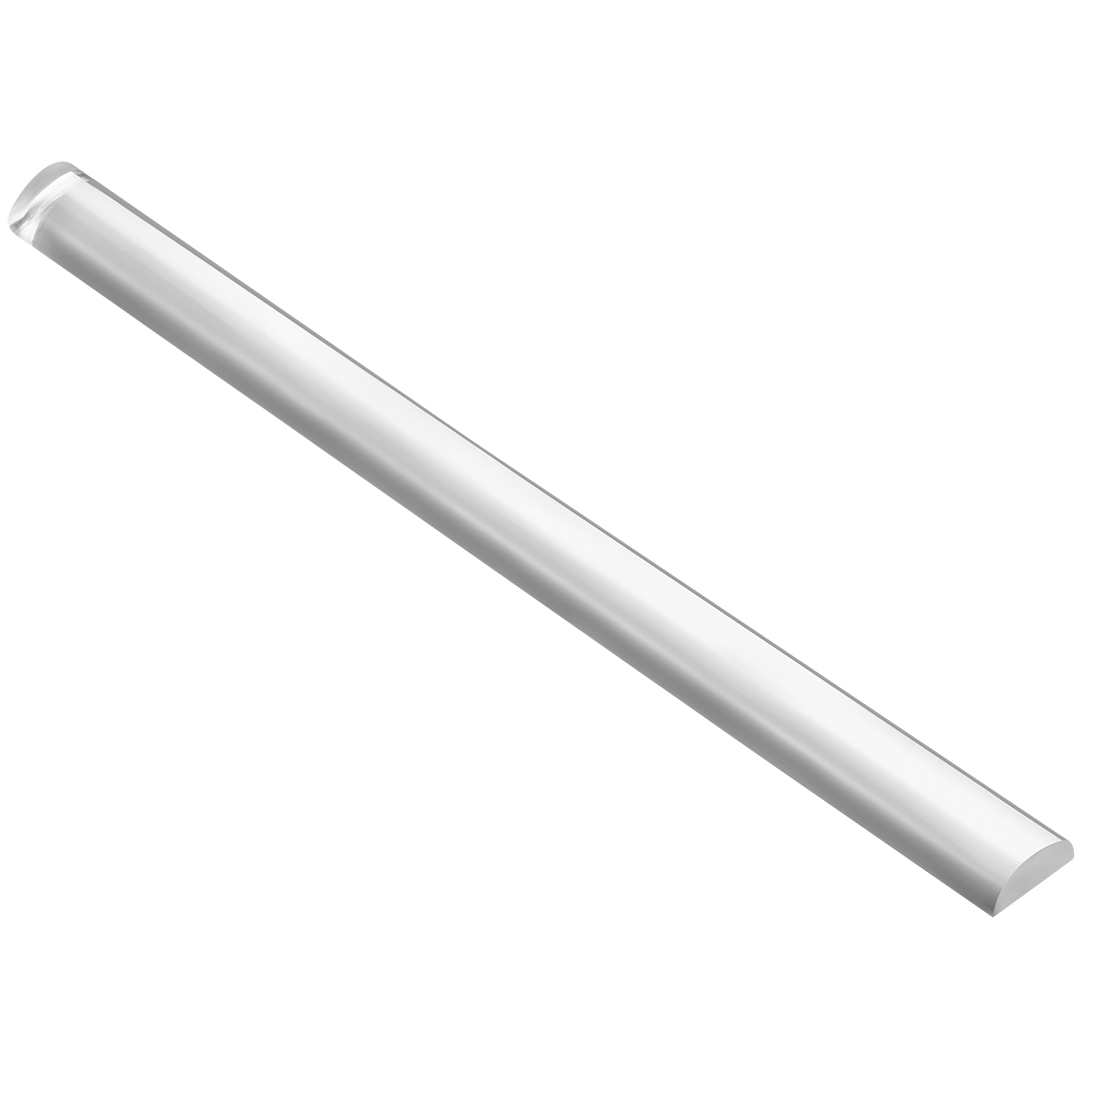 10mmx20mmx250mm Semicircle Shape Solid Acrylic Rod PMMA Extruded Bar Clear